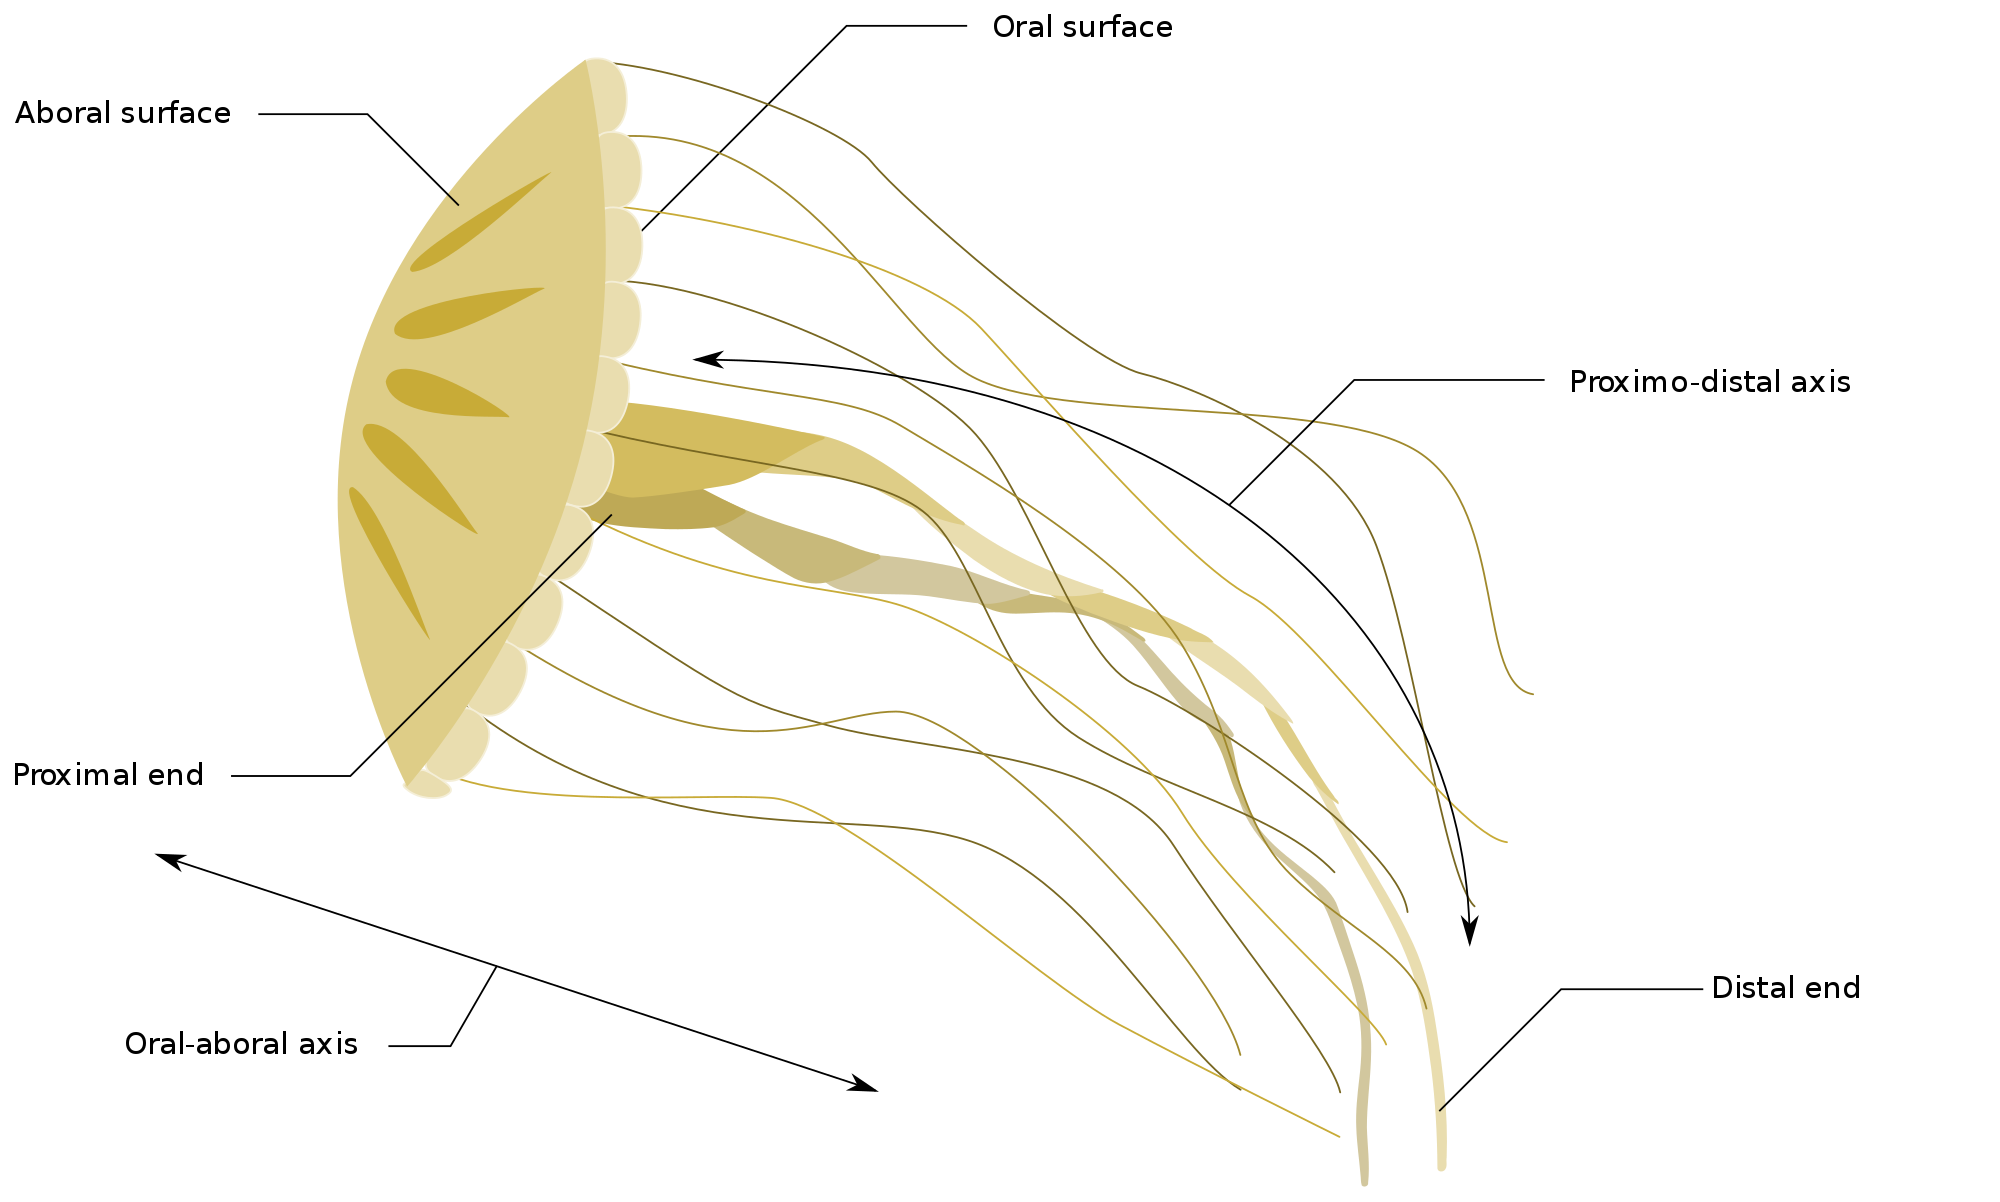 Jellyfish svg file. Axes wikimedia commons open